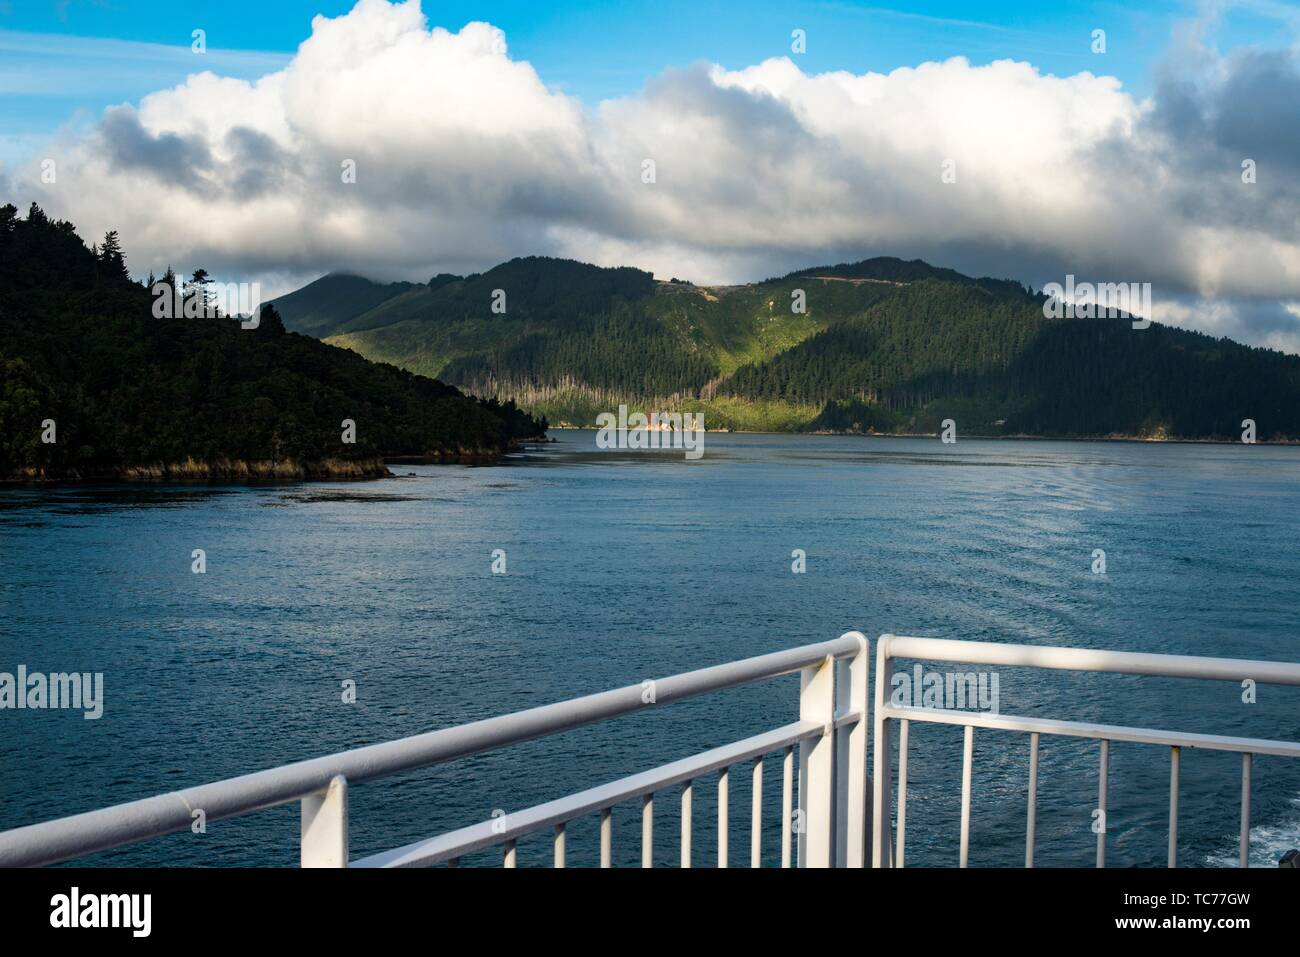 view from the ferry boat in Queen Charlotte Sound as it approaches Picton on the south island of New Zealand. - Stock Image